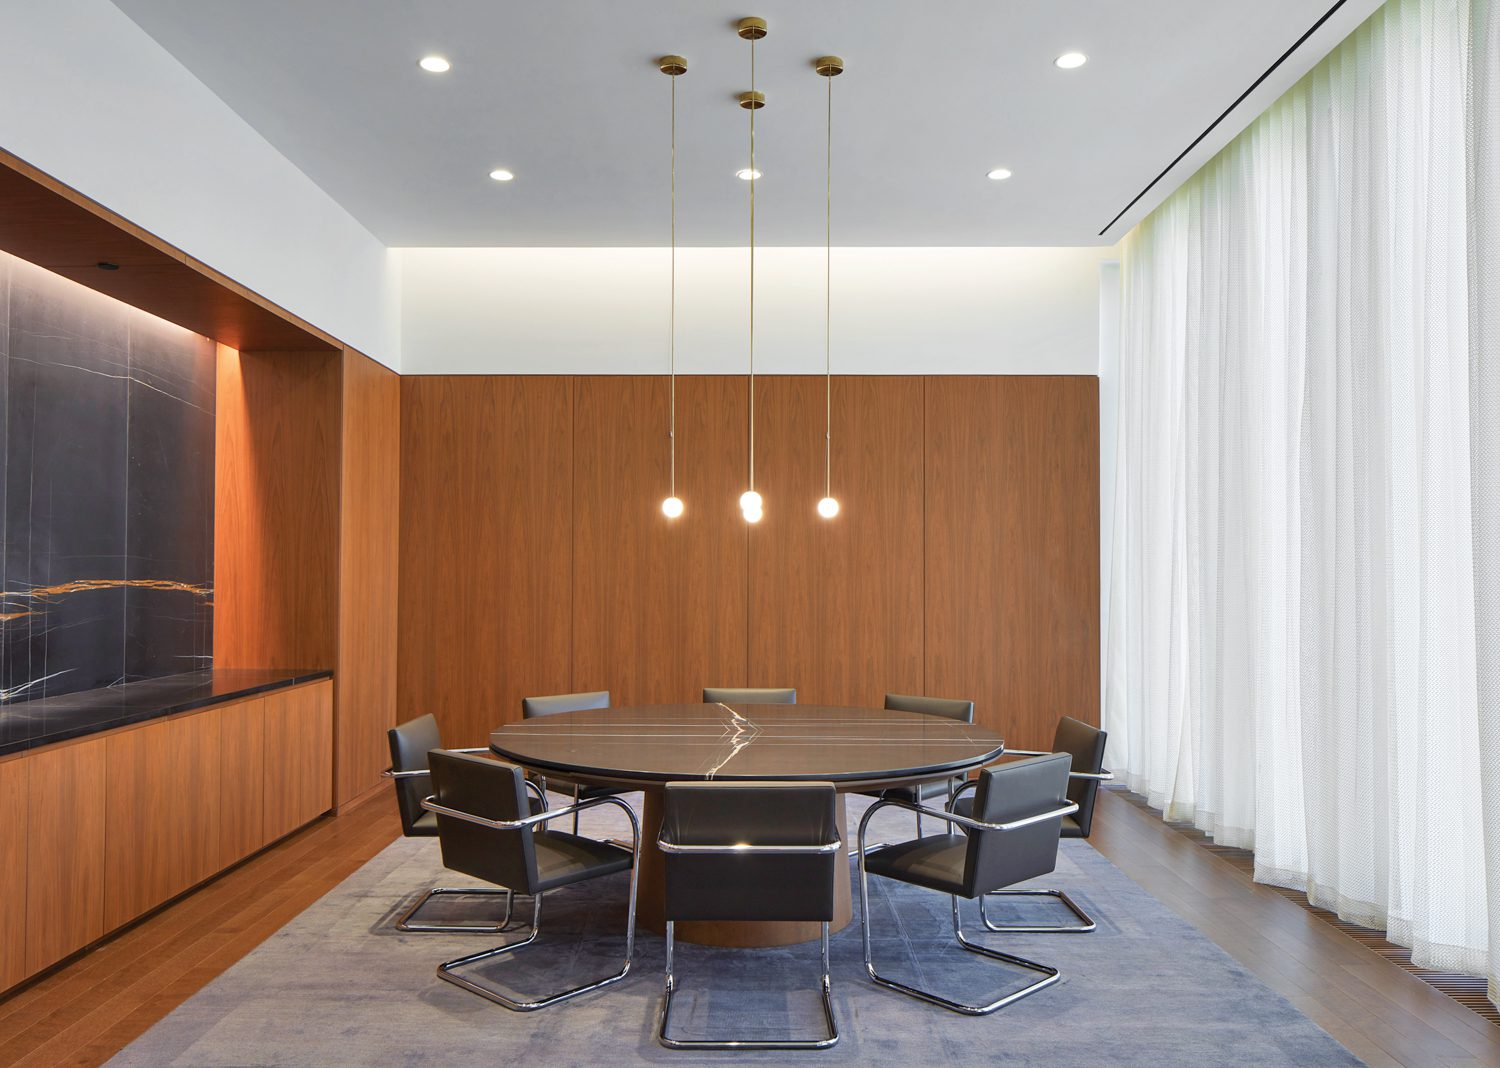 Sahara Noir marble forms the feature wall and custom table's top in an executive meeting room with white oak flooring.